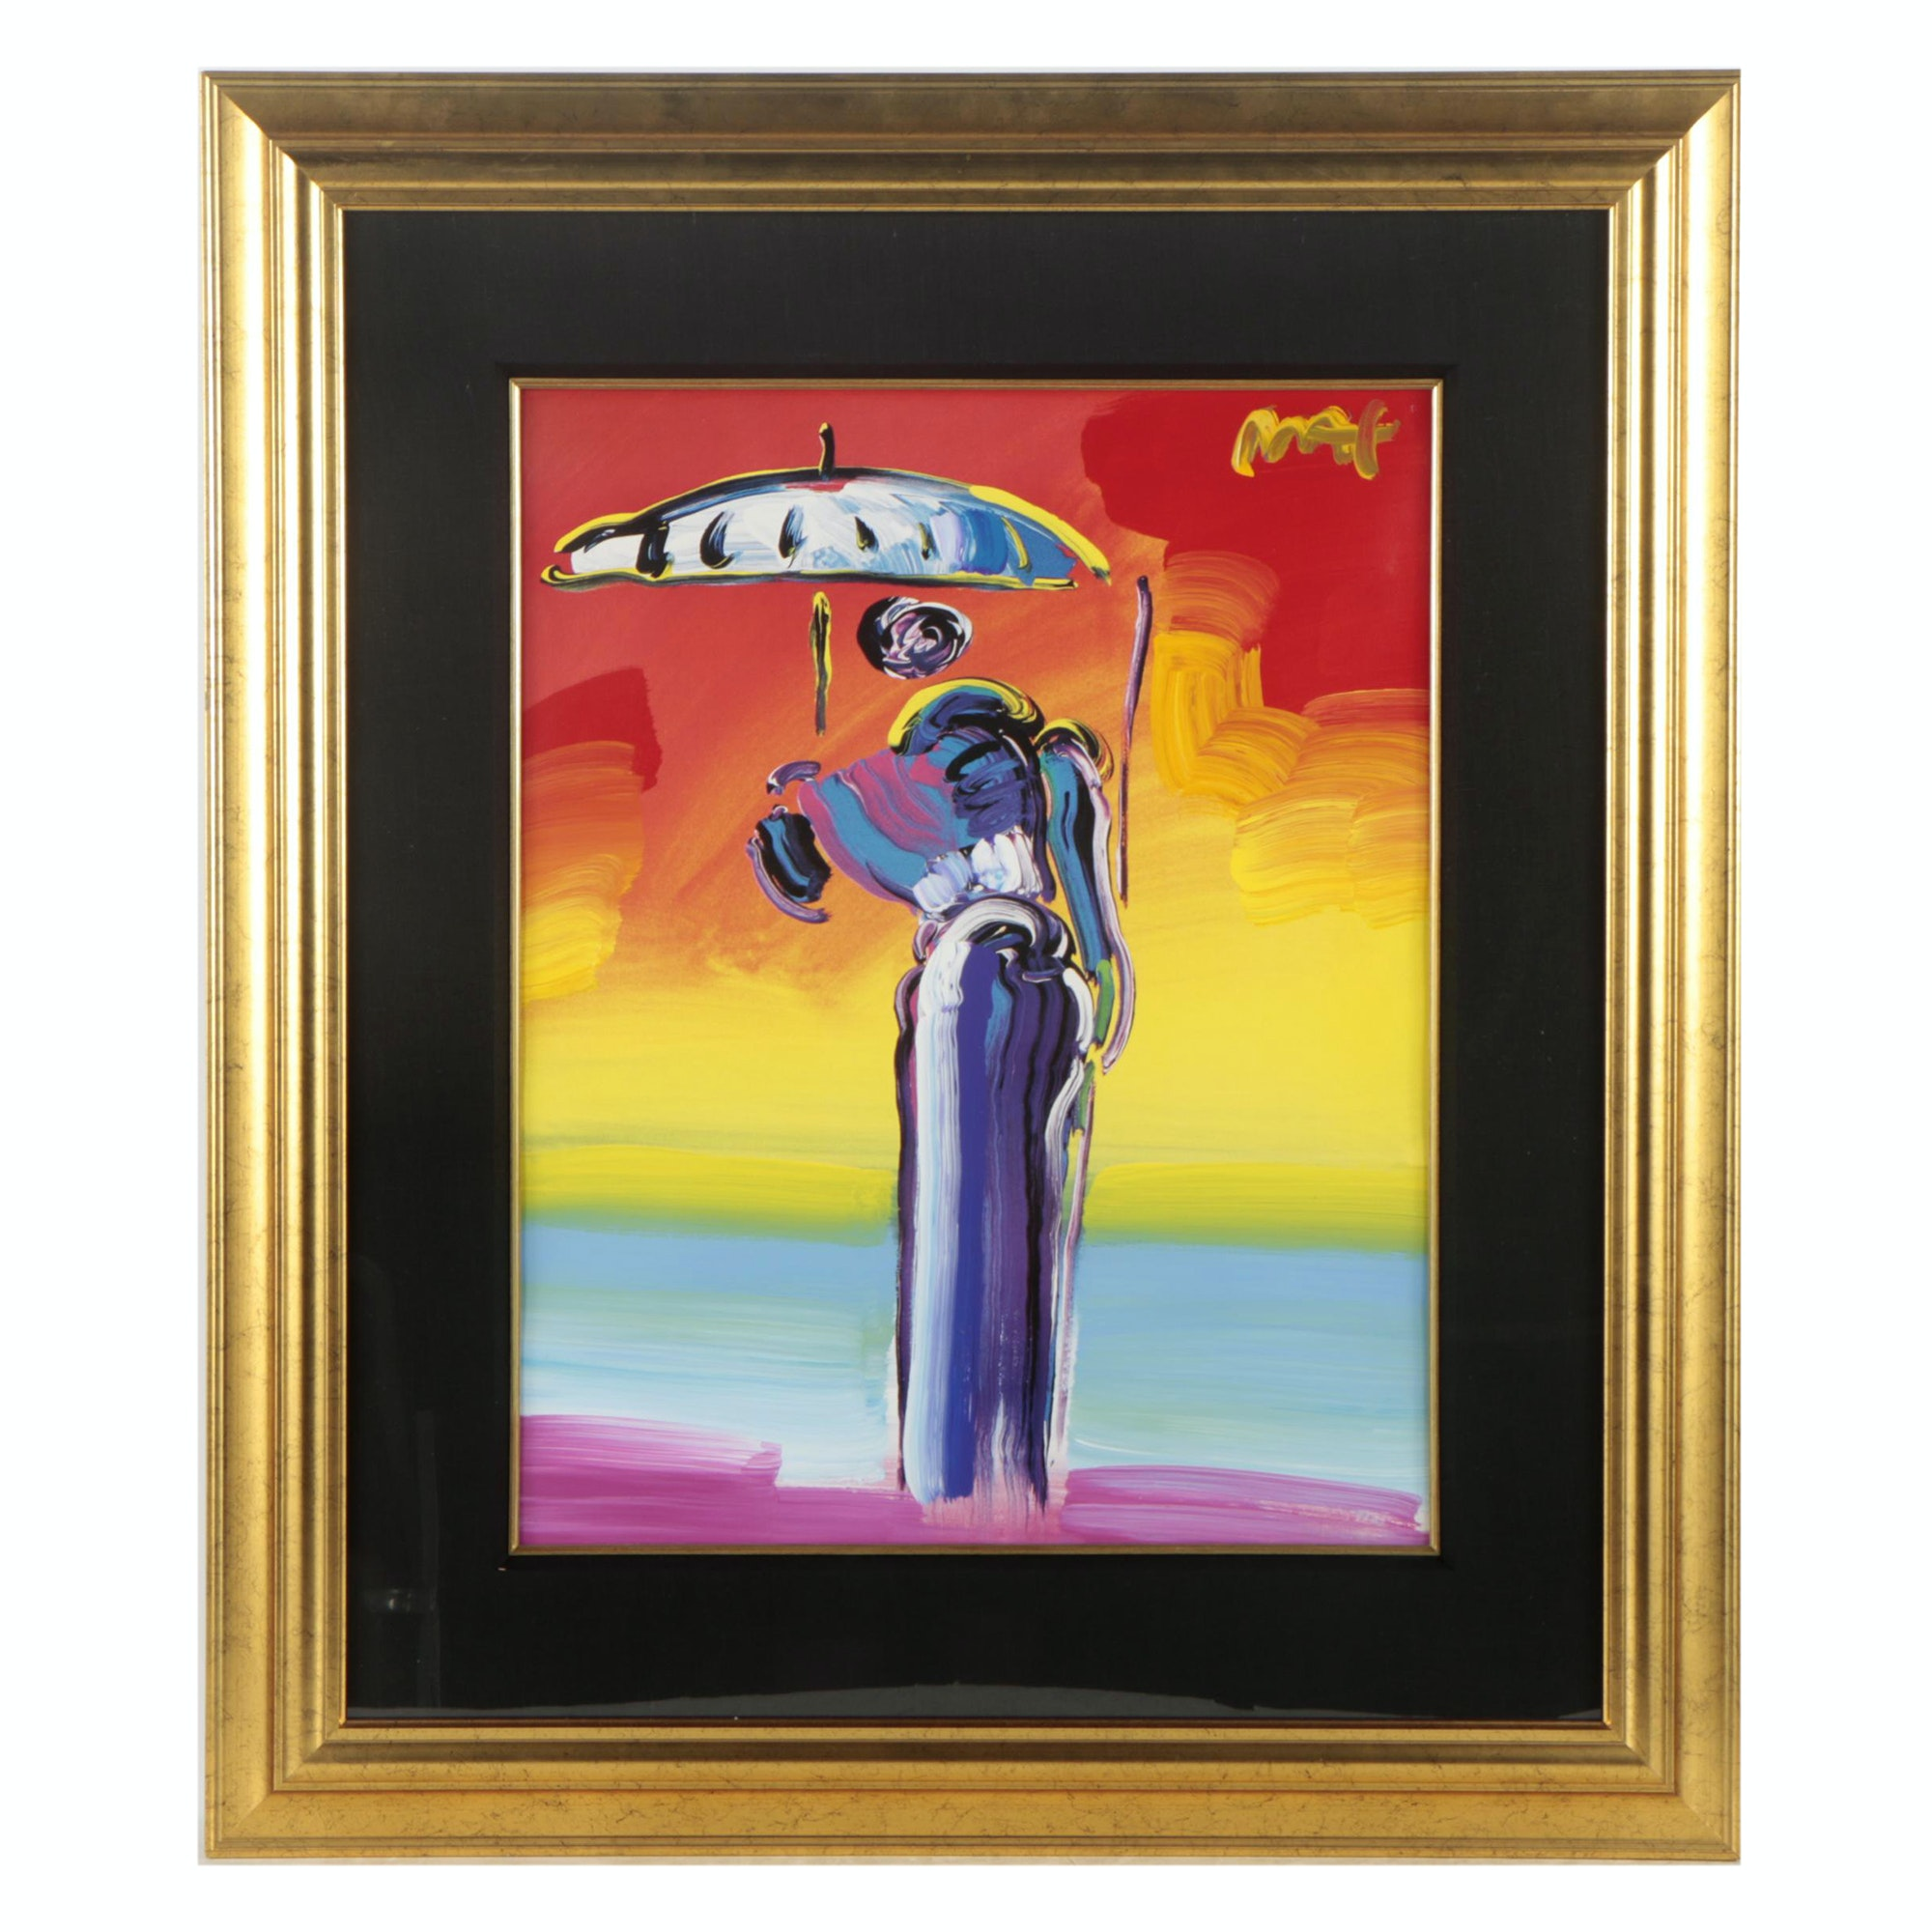 """Peter Max Embellished Offset Lithograph """"Umbrella Man with Cane"""""""